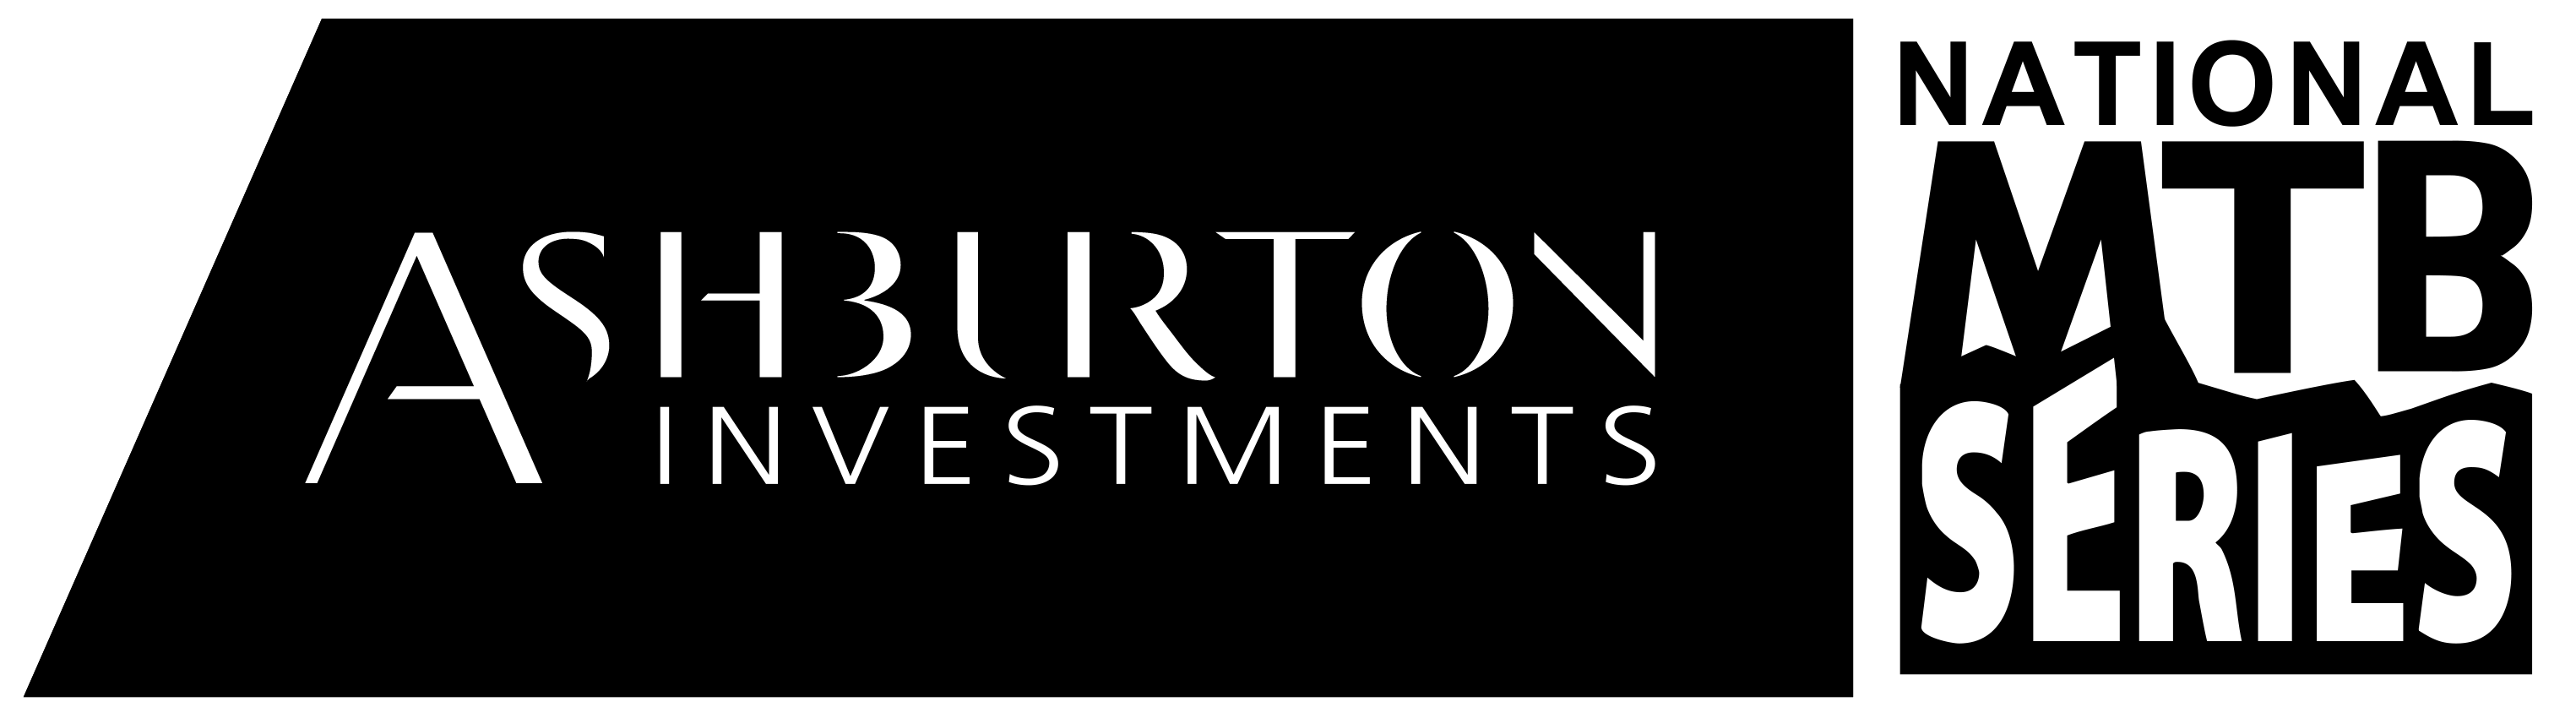 Ashburton_Investments_NMTBS_logo.fw